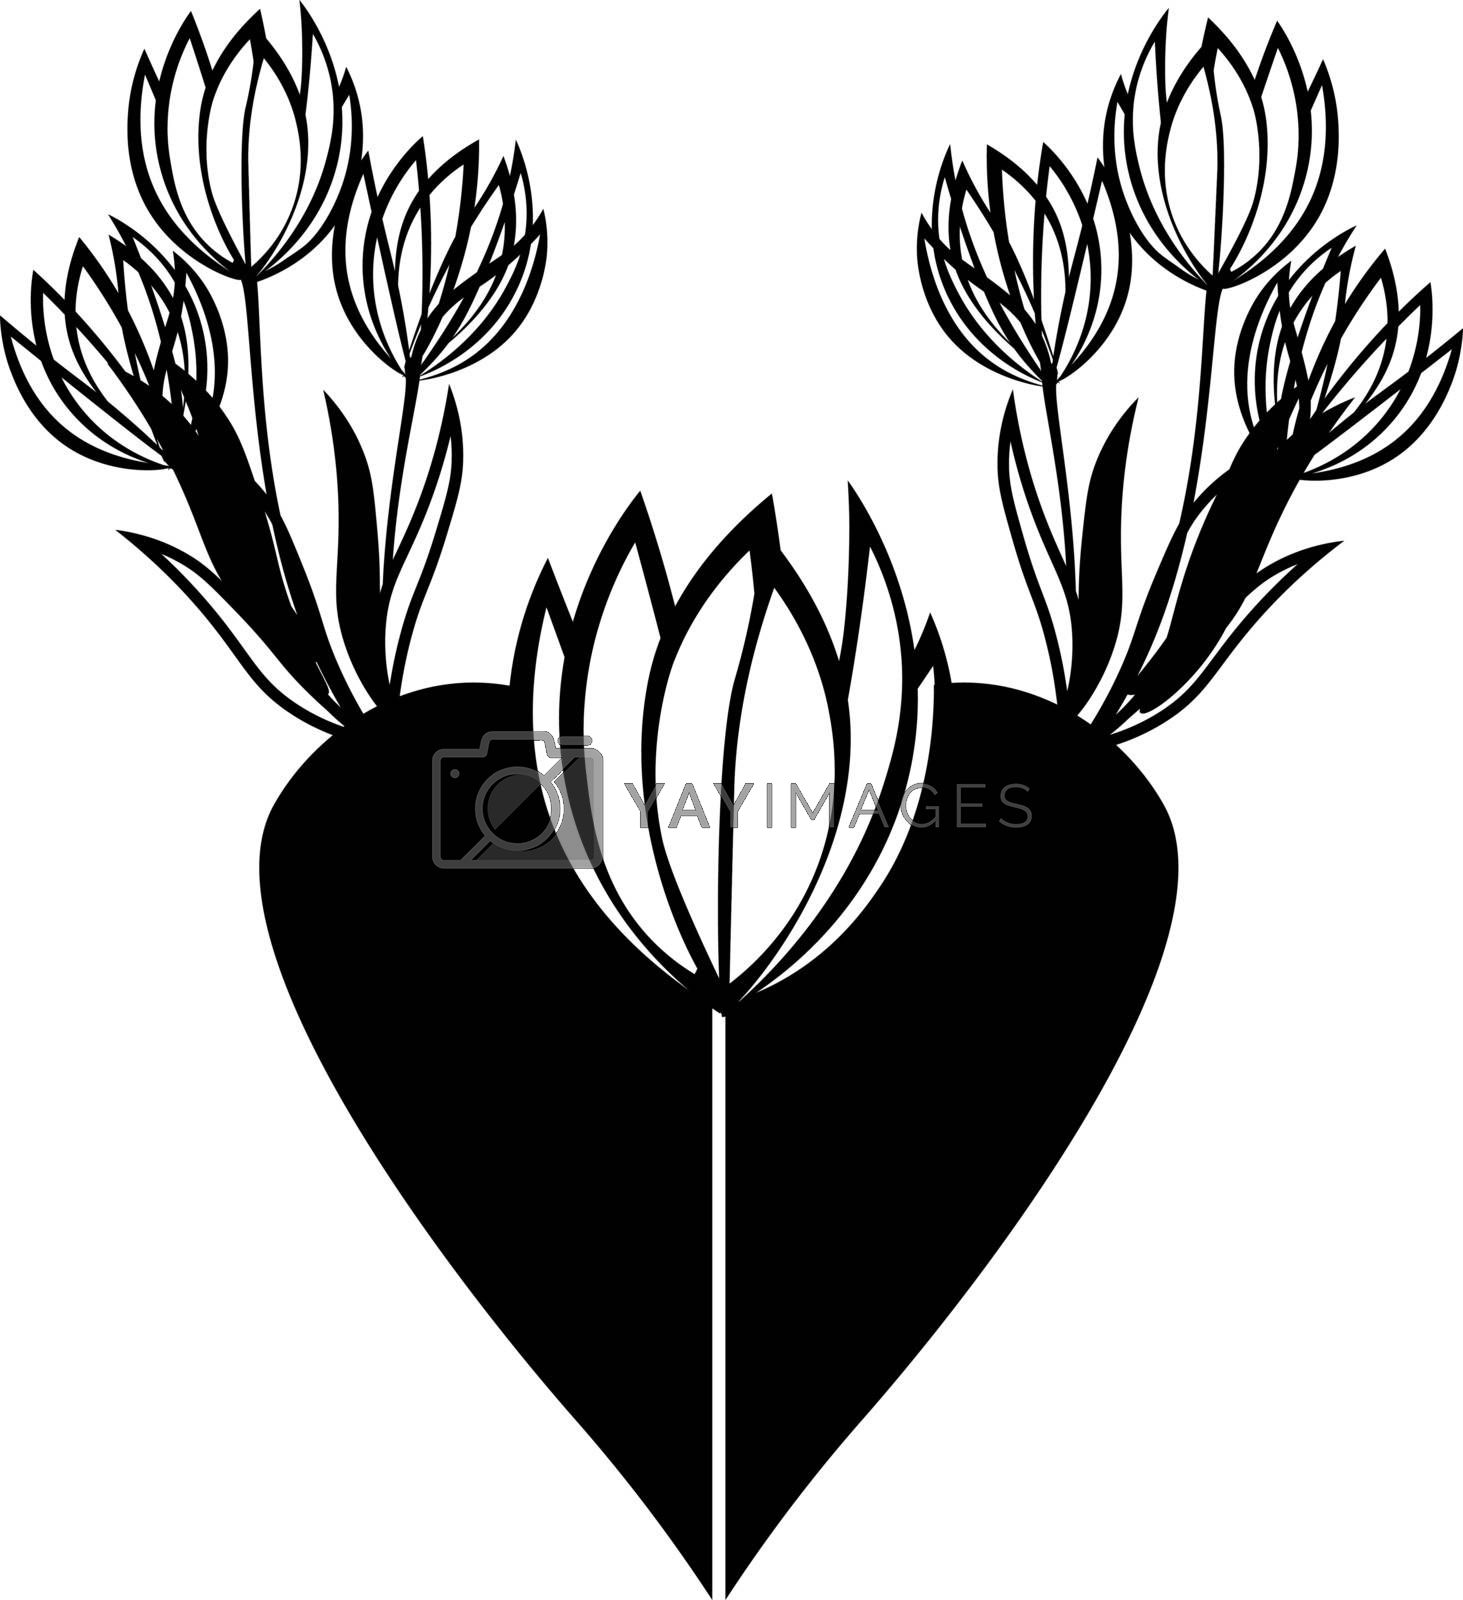 Simple sketch of seven contour black and white minimalistic tulips